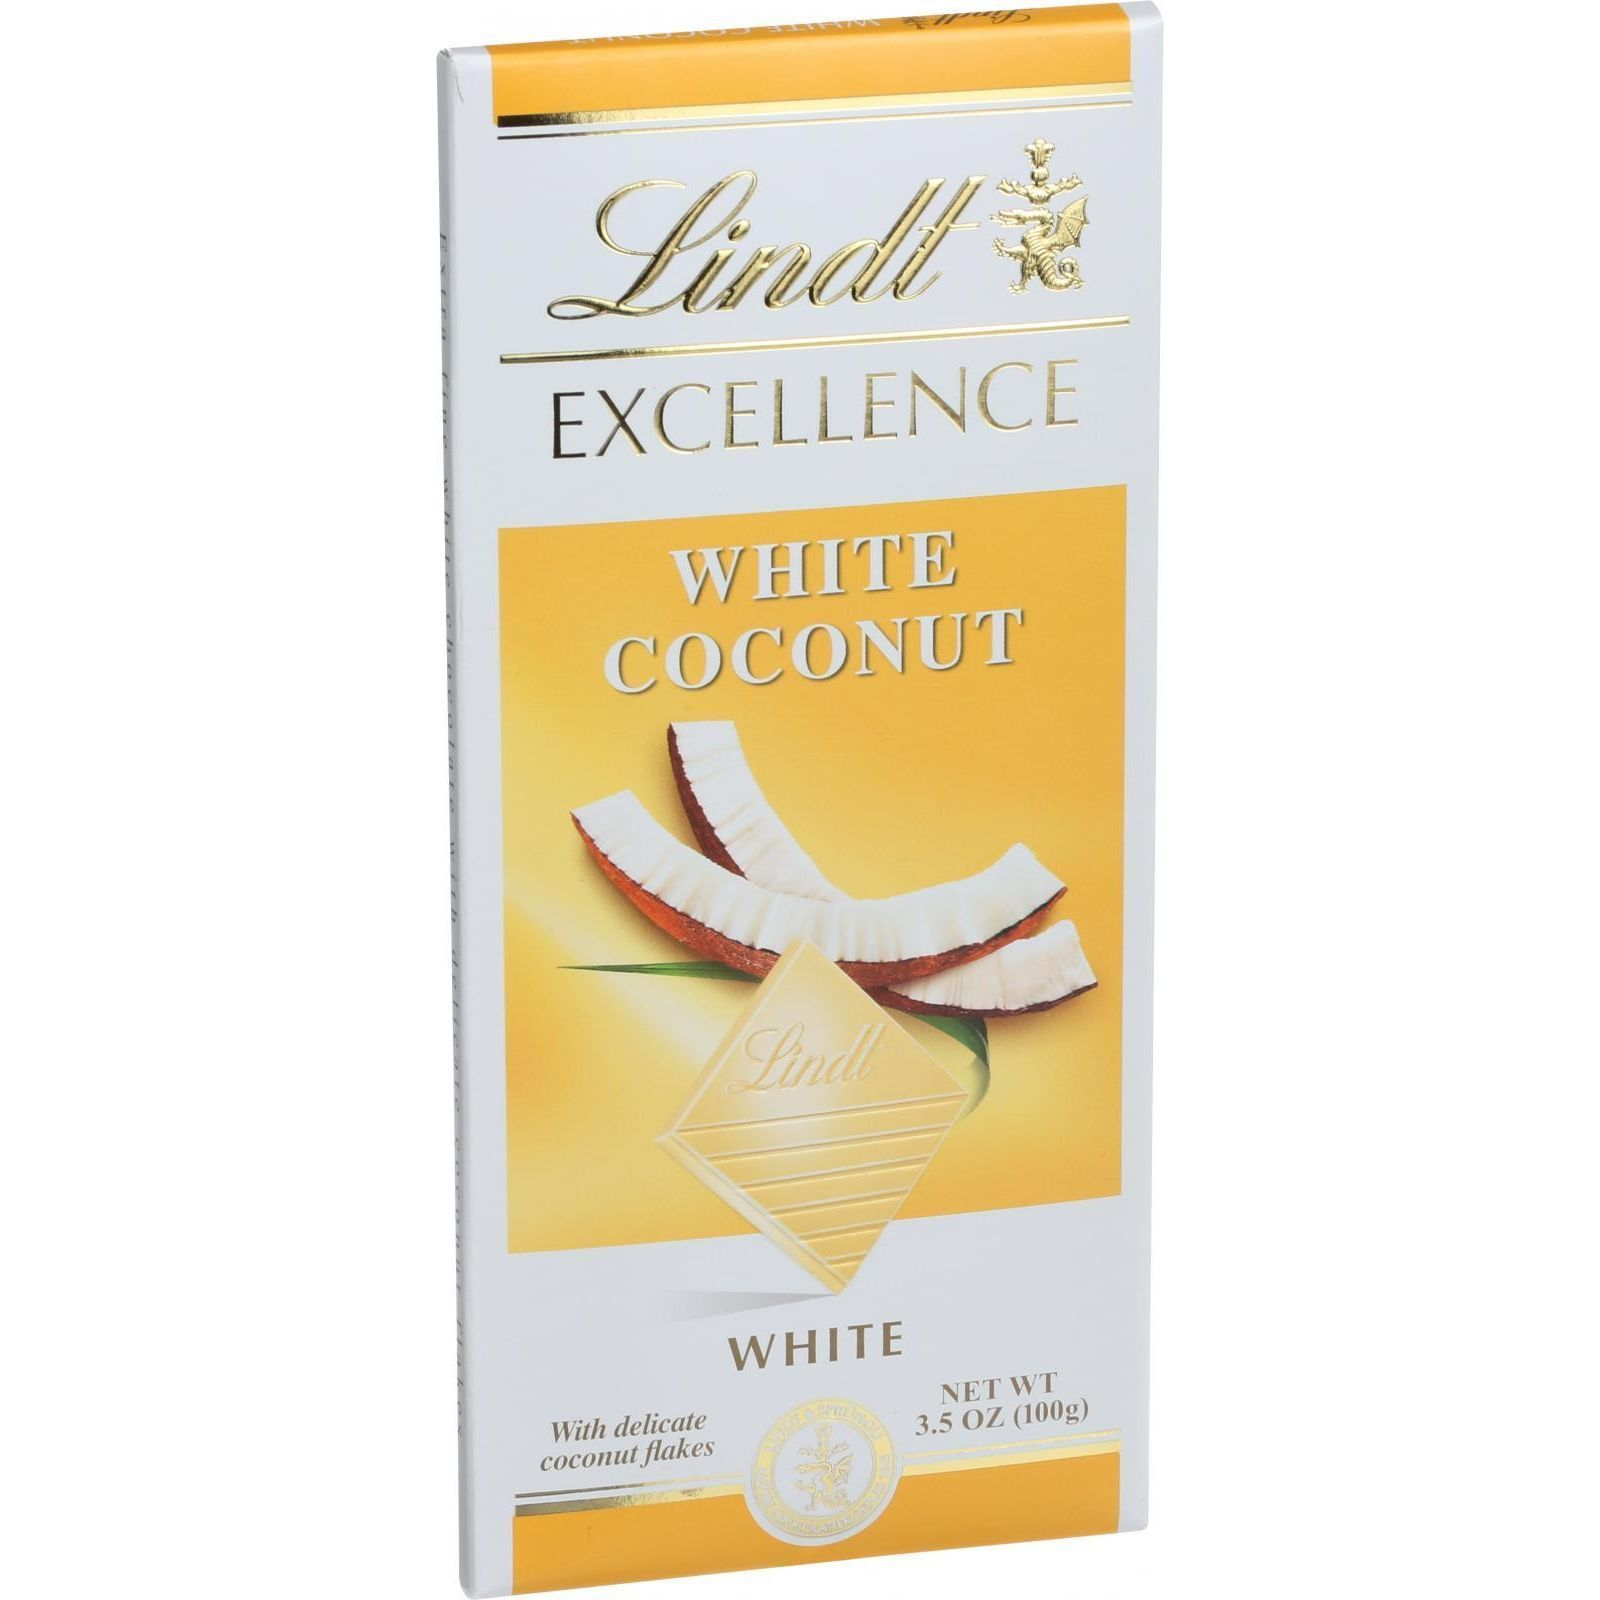 Lindt Chocolate Bar - White Chocolate - Coconut - 3.5 oz Bars - Case of 12